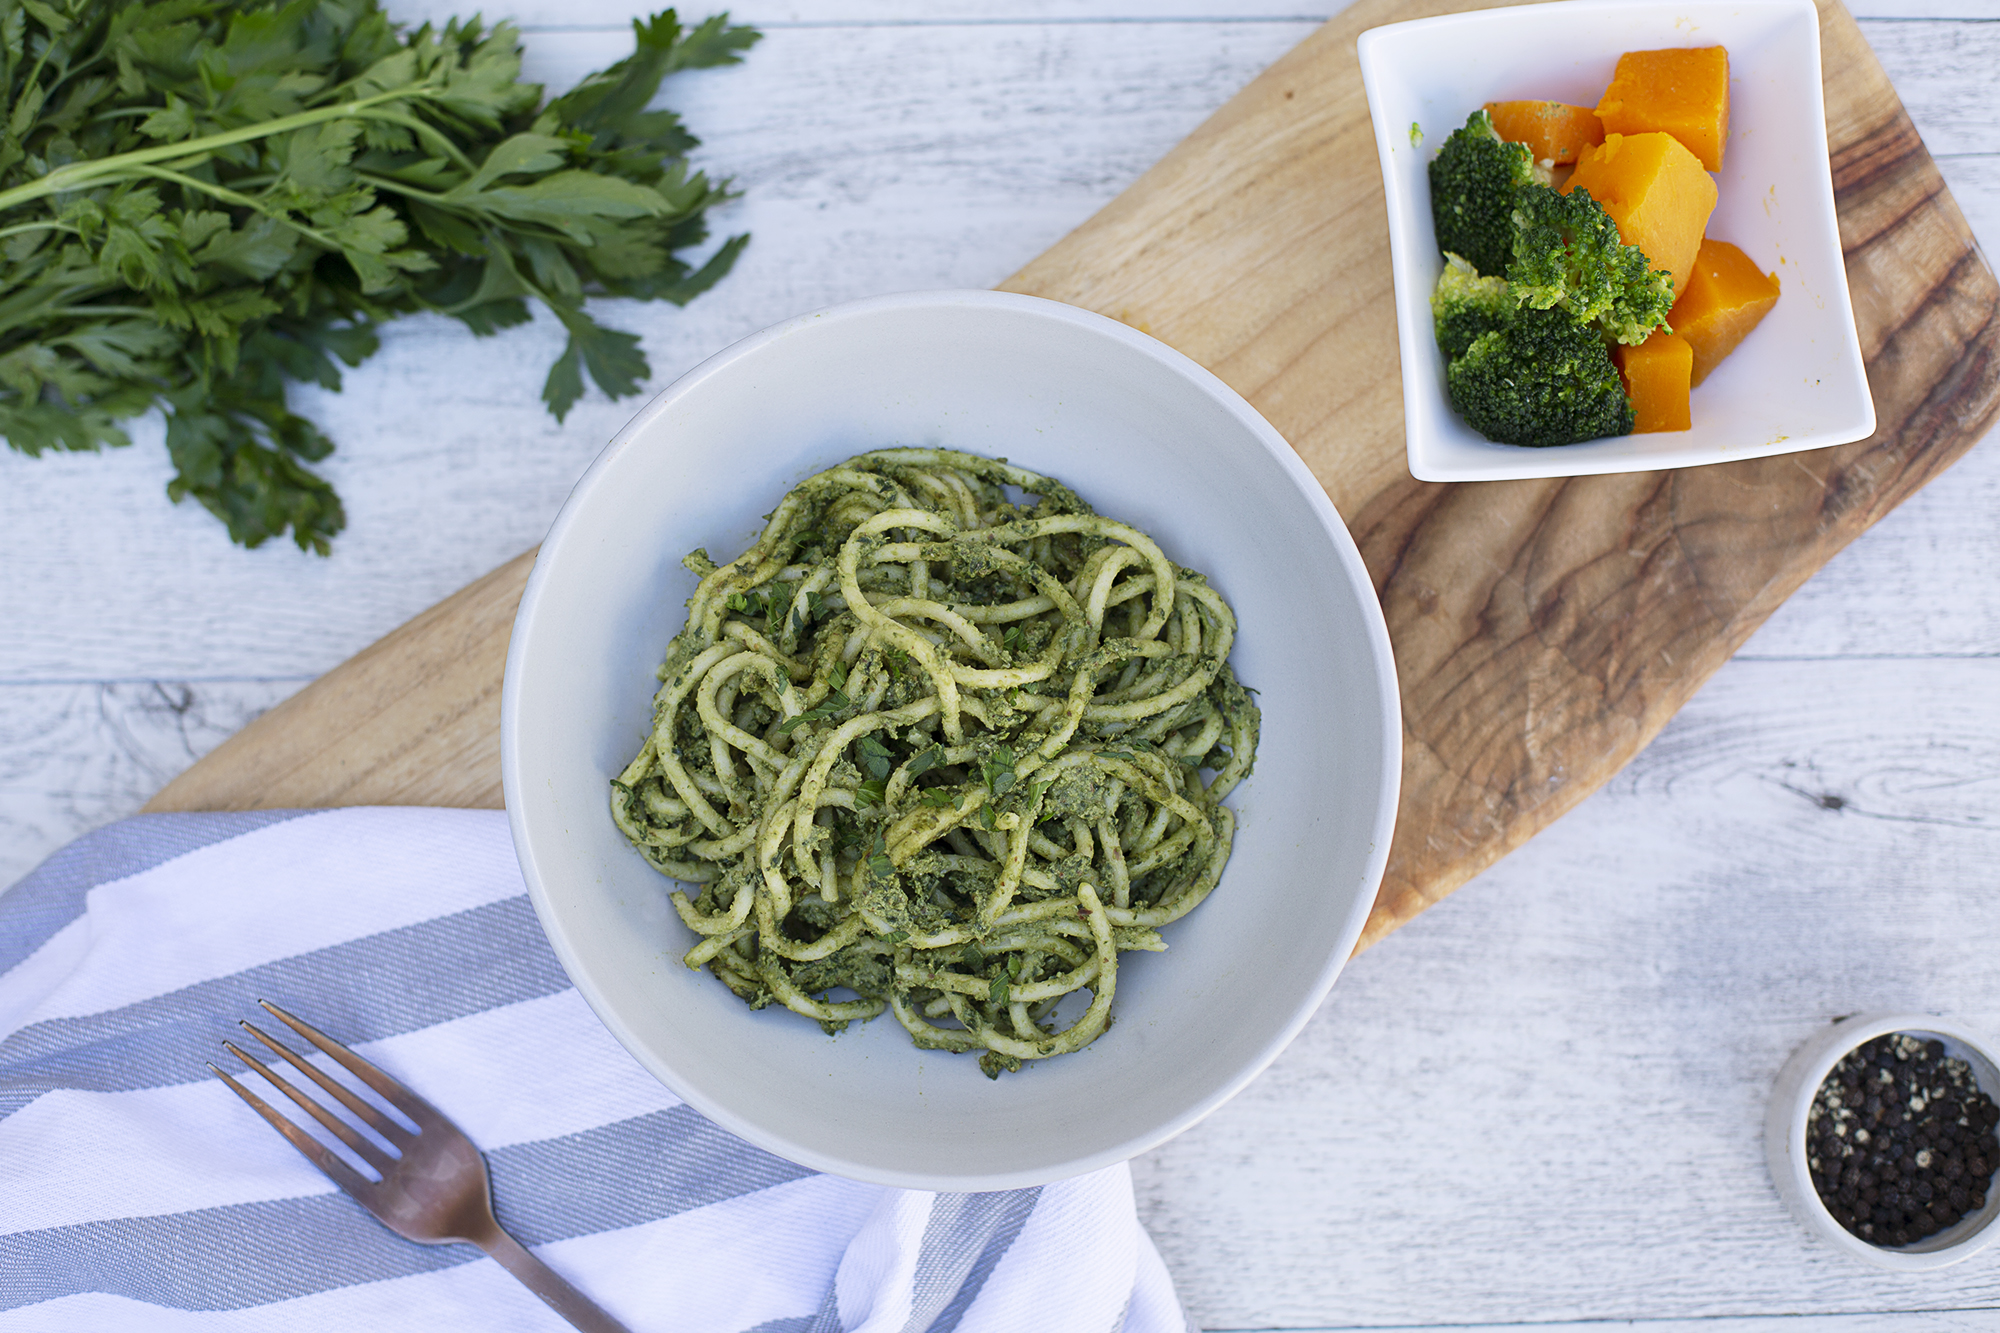 1003. Pesto Pasta served with roasted pumpkin and blanched broccoli